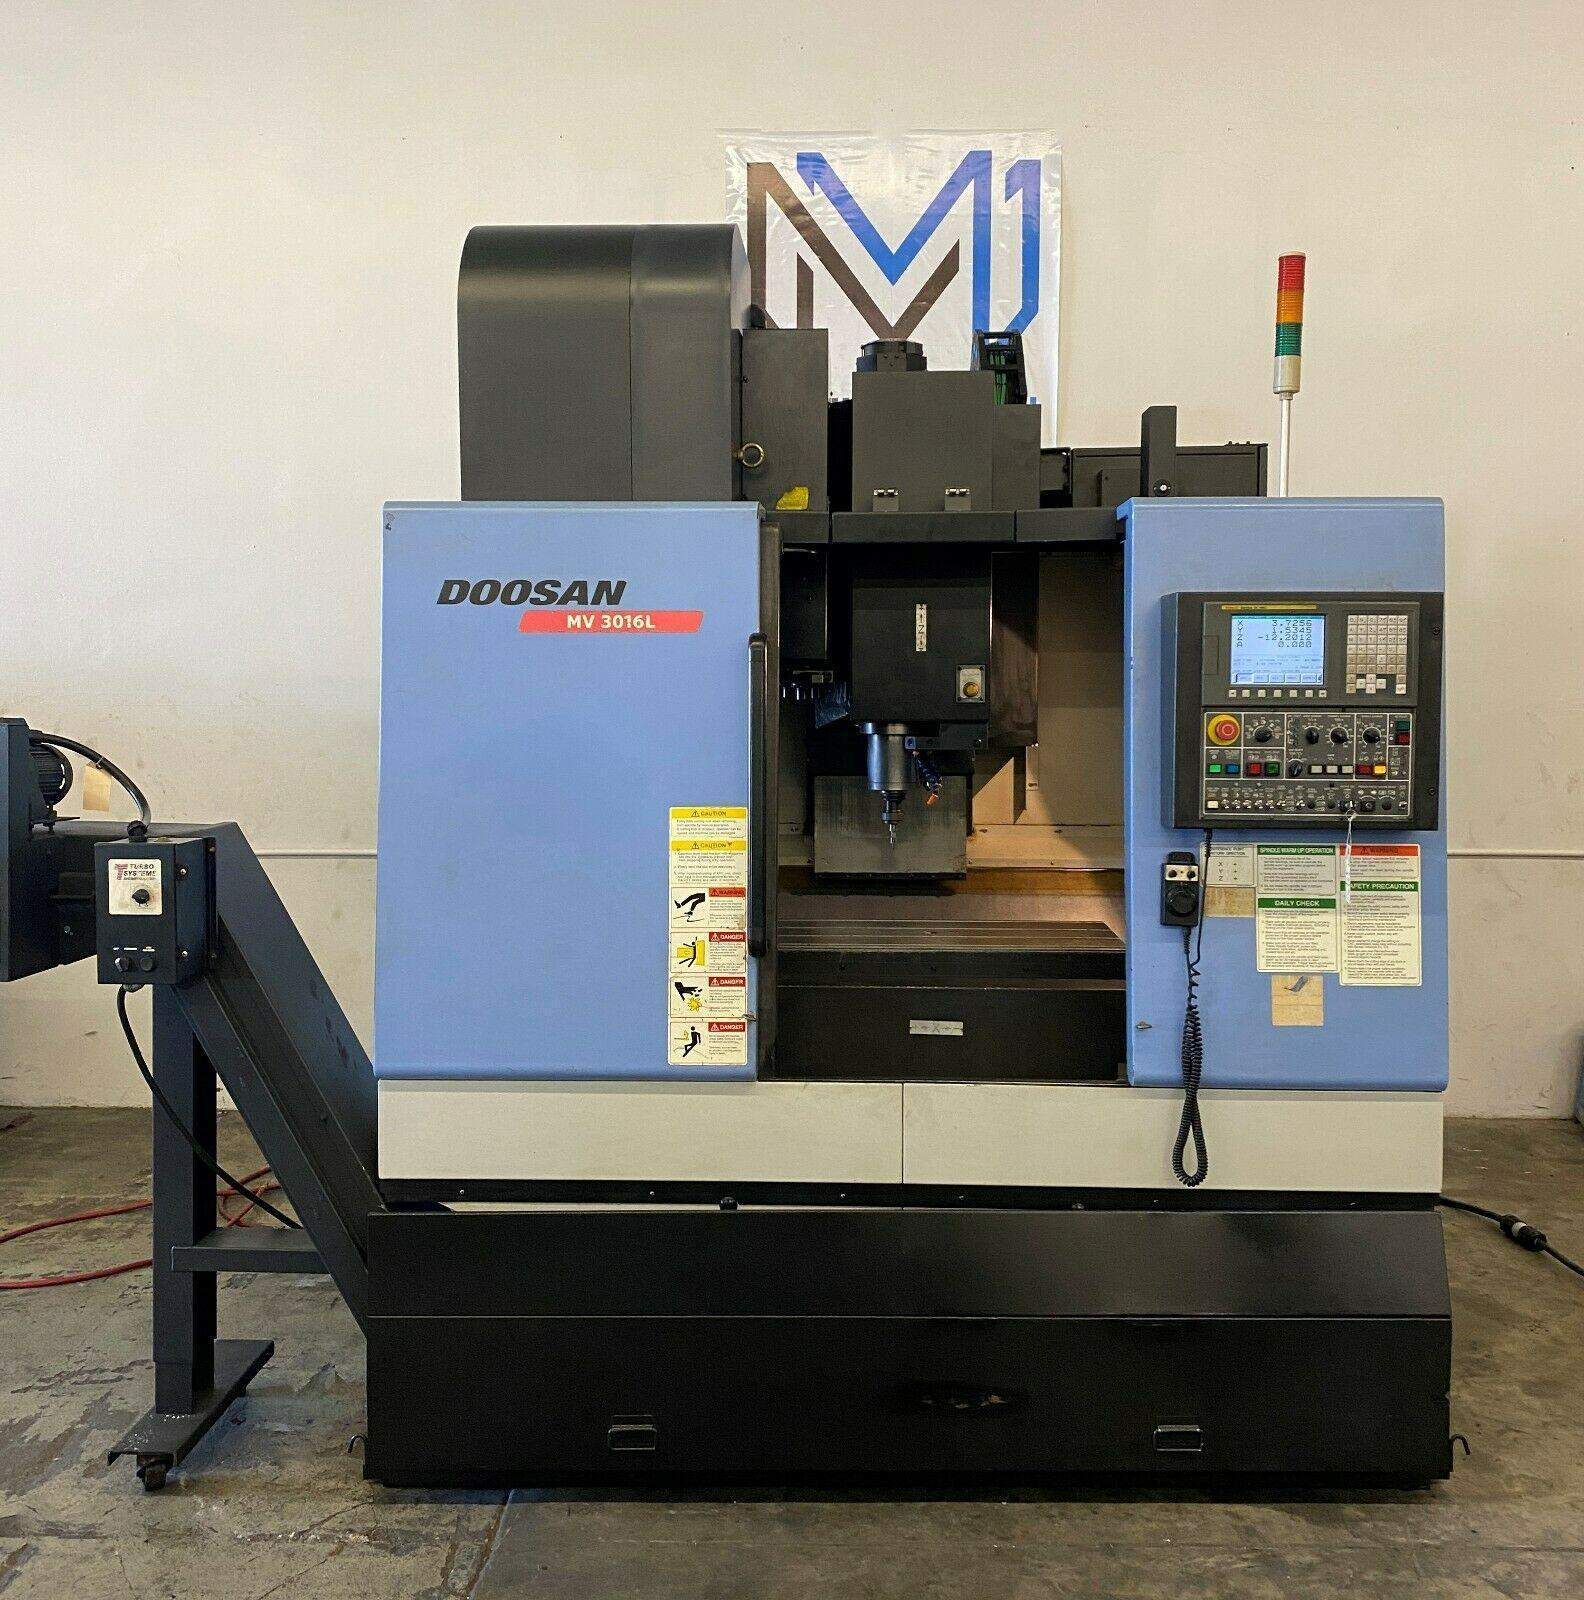 DOOSAN MV3016L CNC VERTICAL MACHINING CENTER